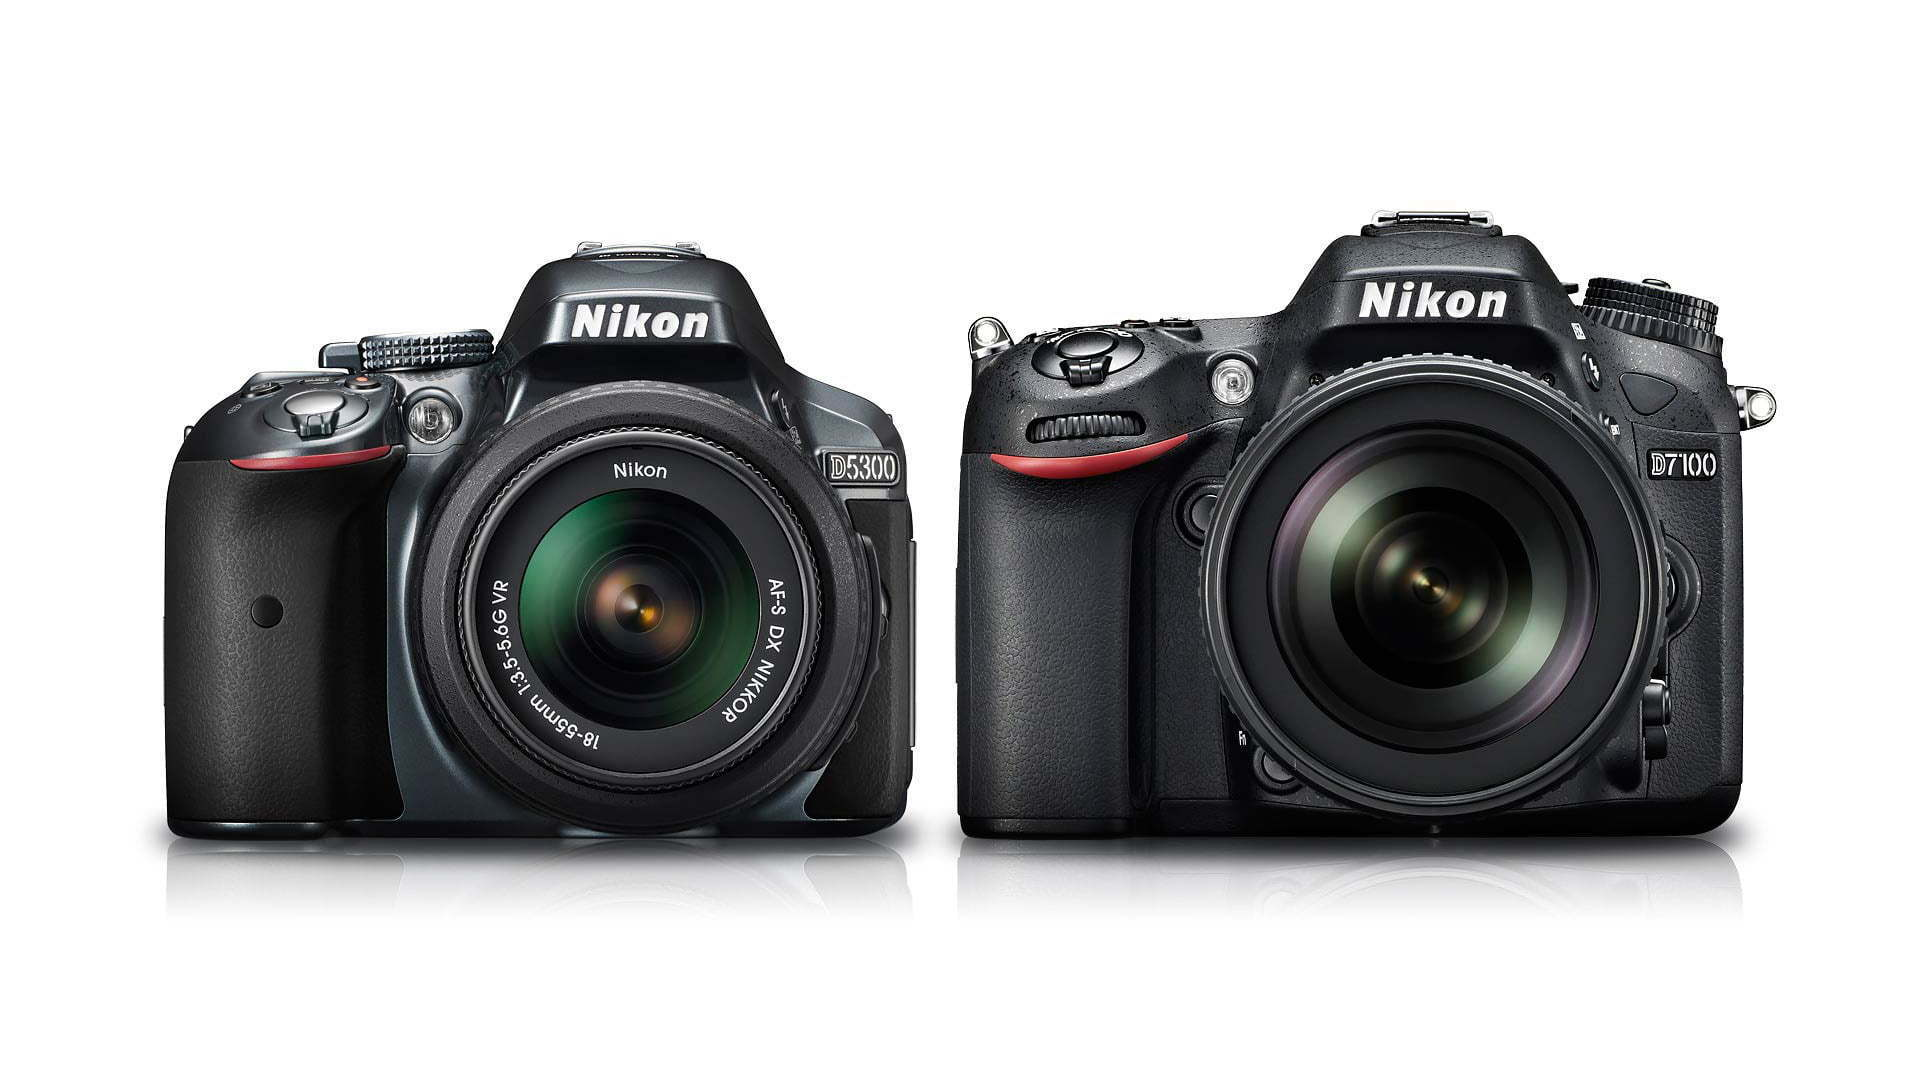 Nikon D5300 Vs D7100 Which Should You Buy Light And Matter